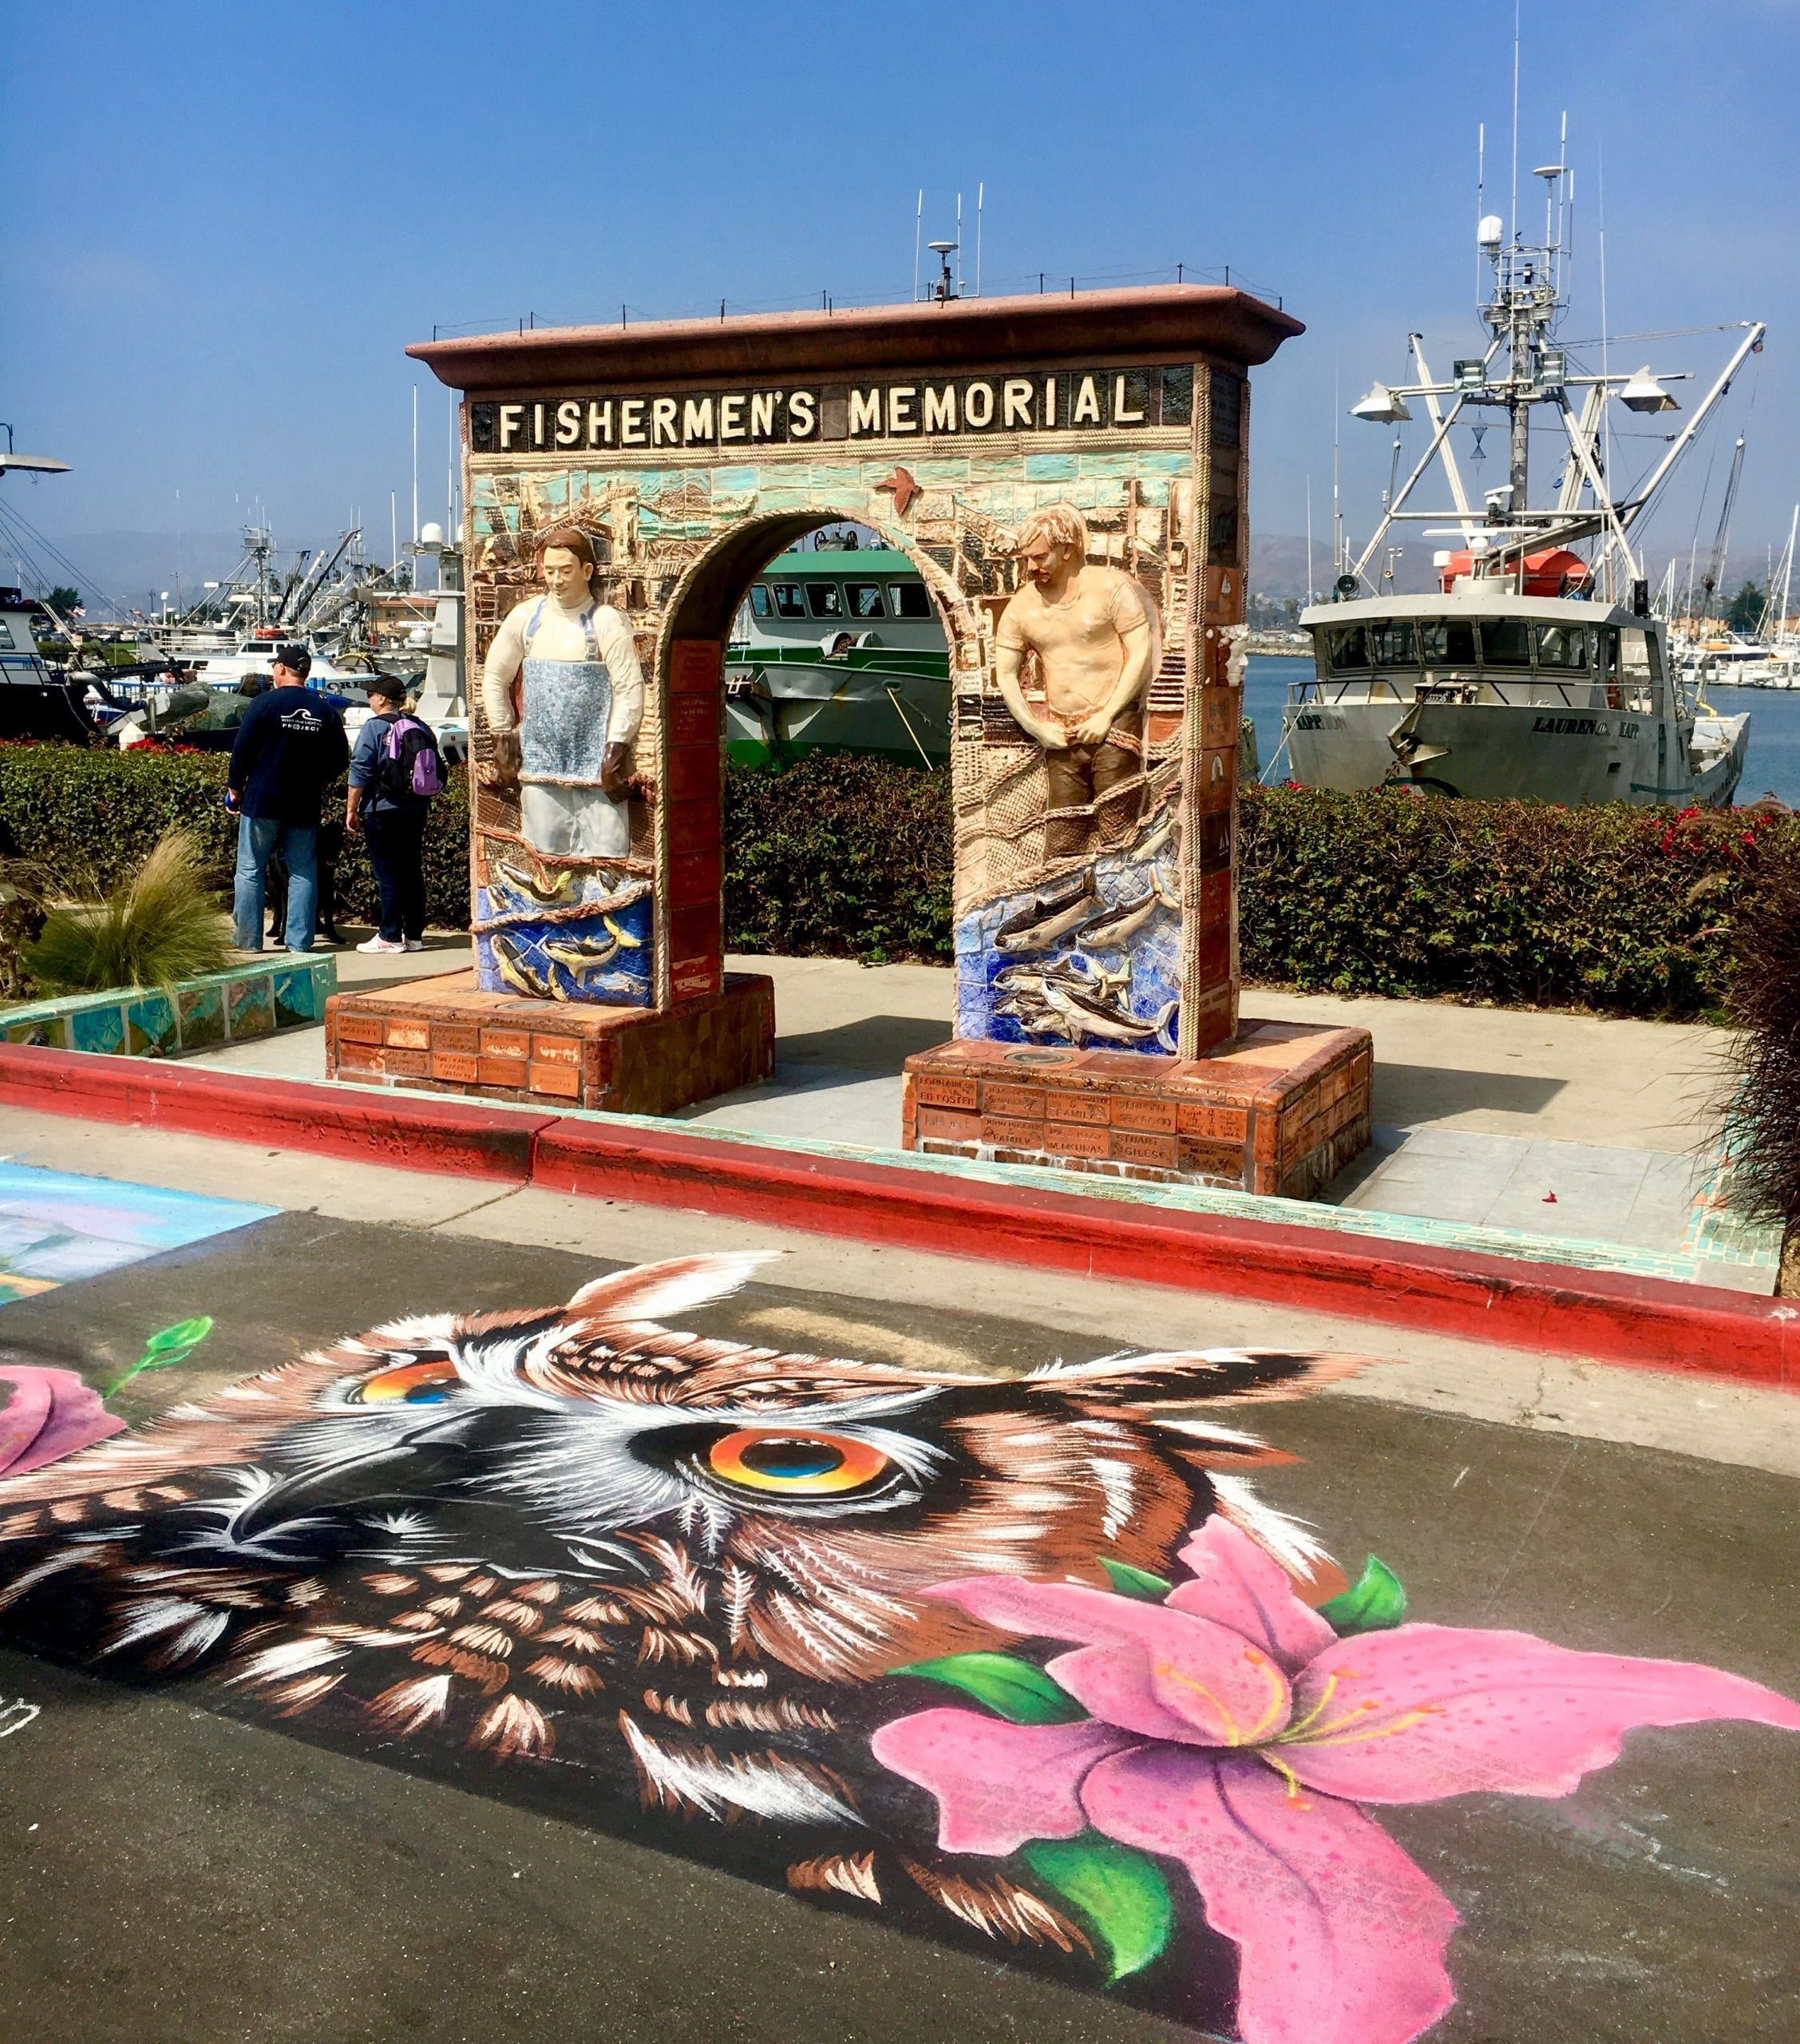 come sea the chalk art against the beautiful harbor!